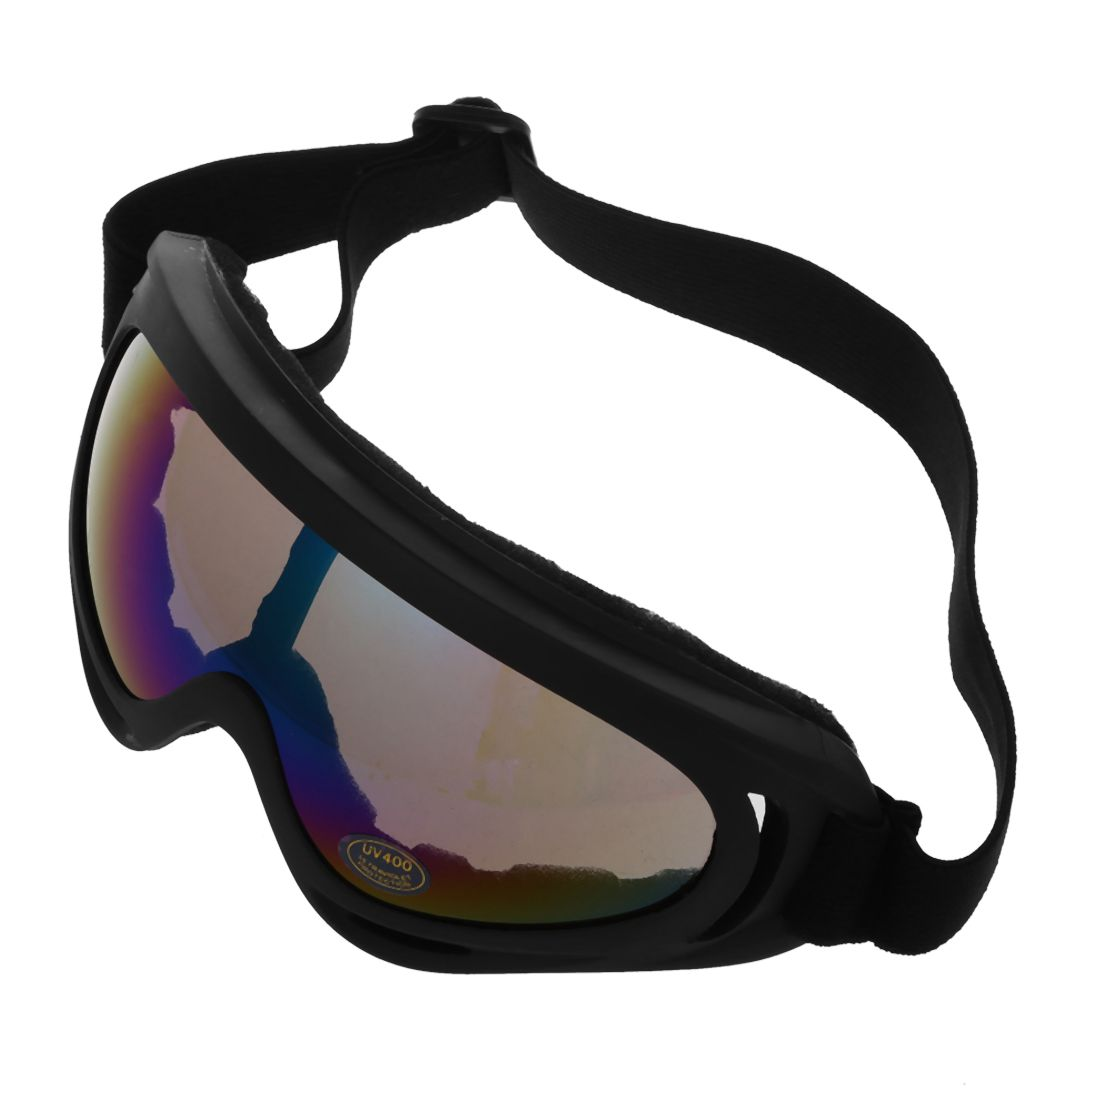 5Set Sale Skiing Eyewear Adult Motocross Motorcycle Dirt Bike ATV MX Off-Road Goggles Multicolour Lens with Black Frame